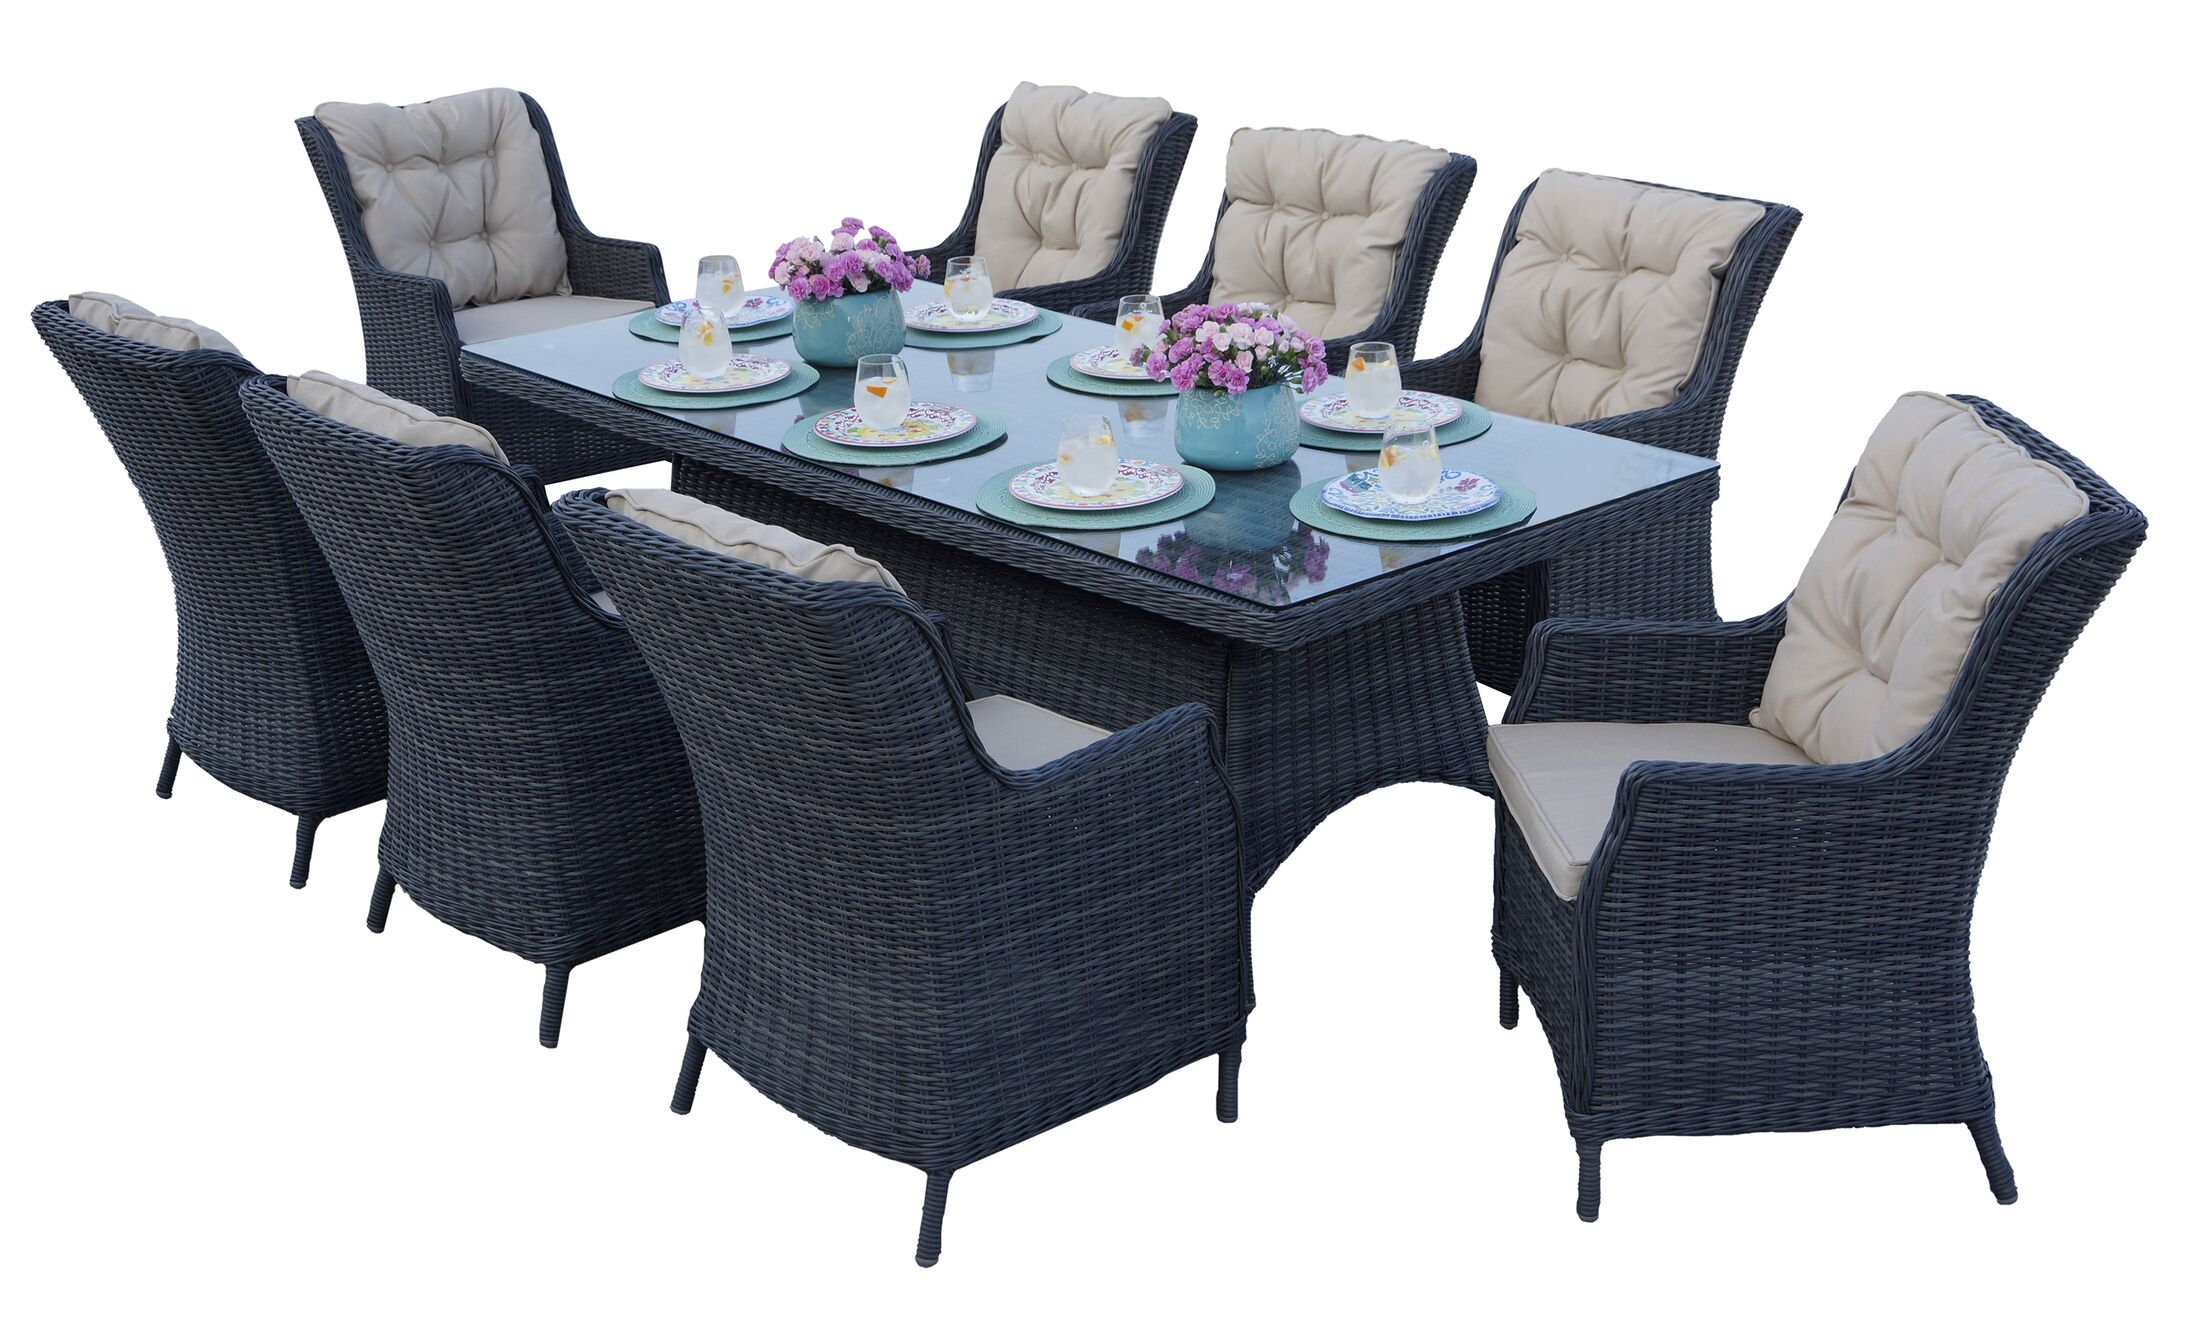 Audra 9 Piece Dining Set with Cushions